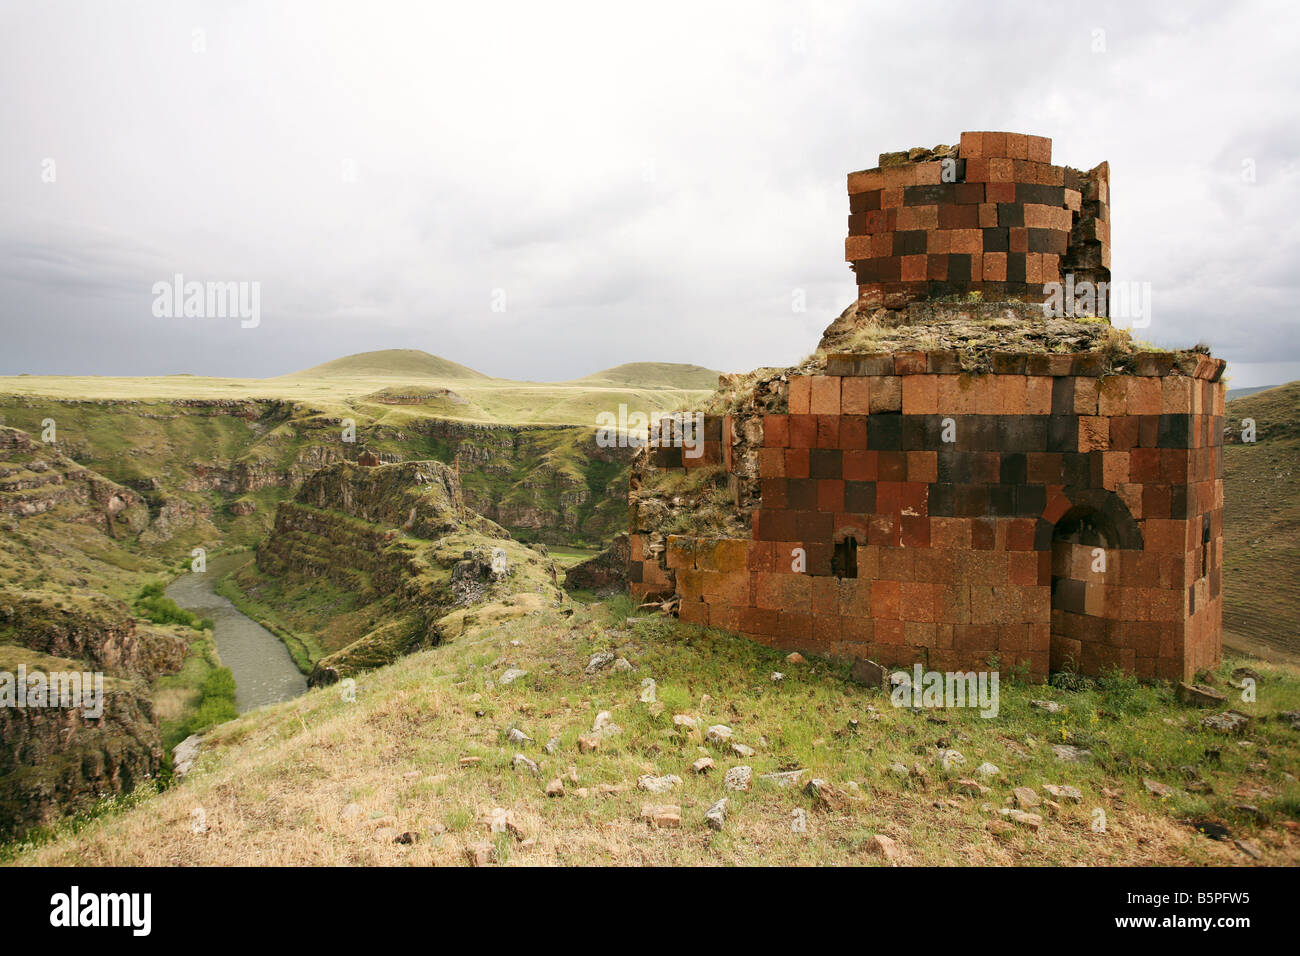 Looking towards Kizkale in Ani, the old city now abandoned, near the border with Armenia - Stock Image